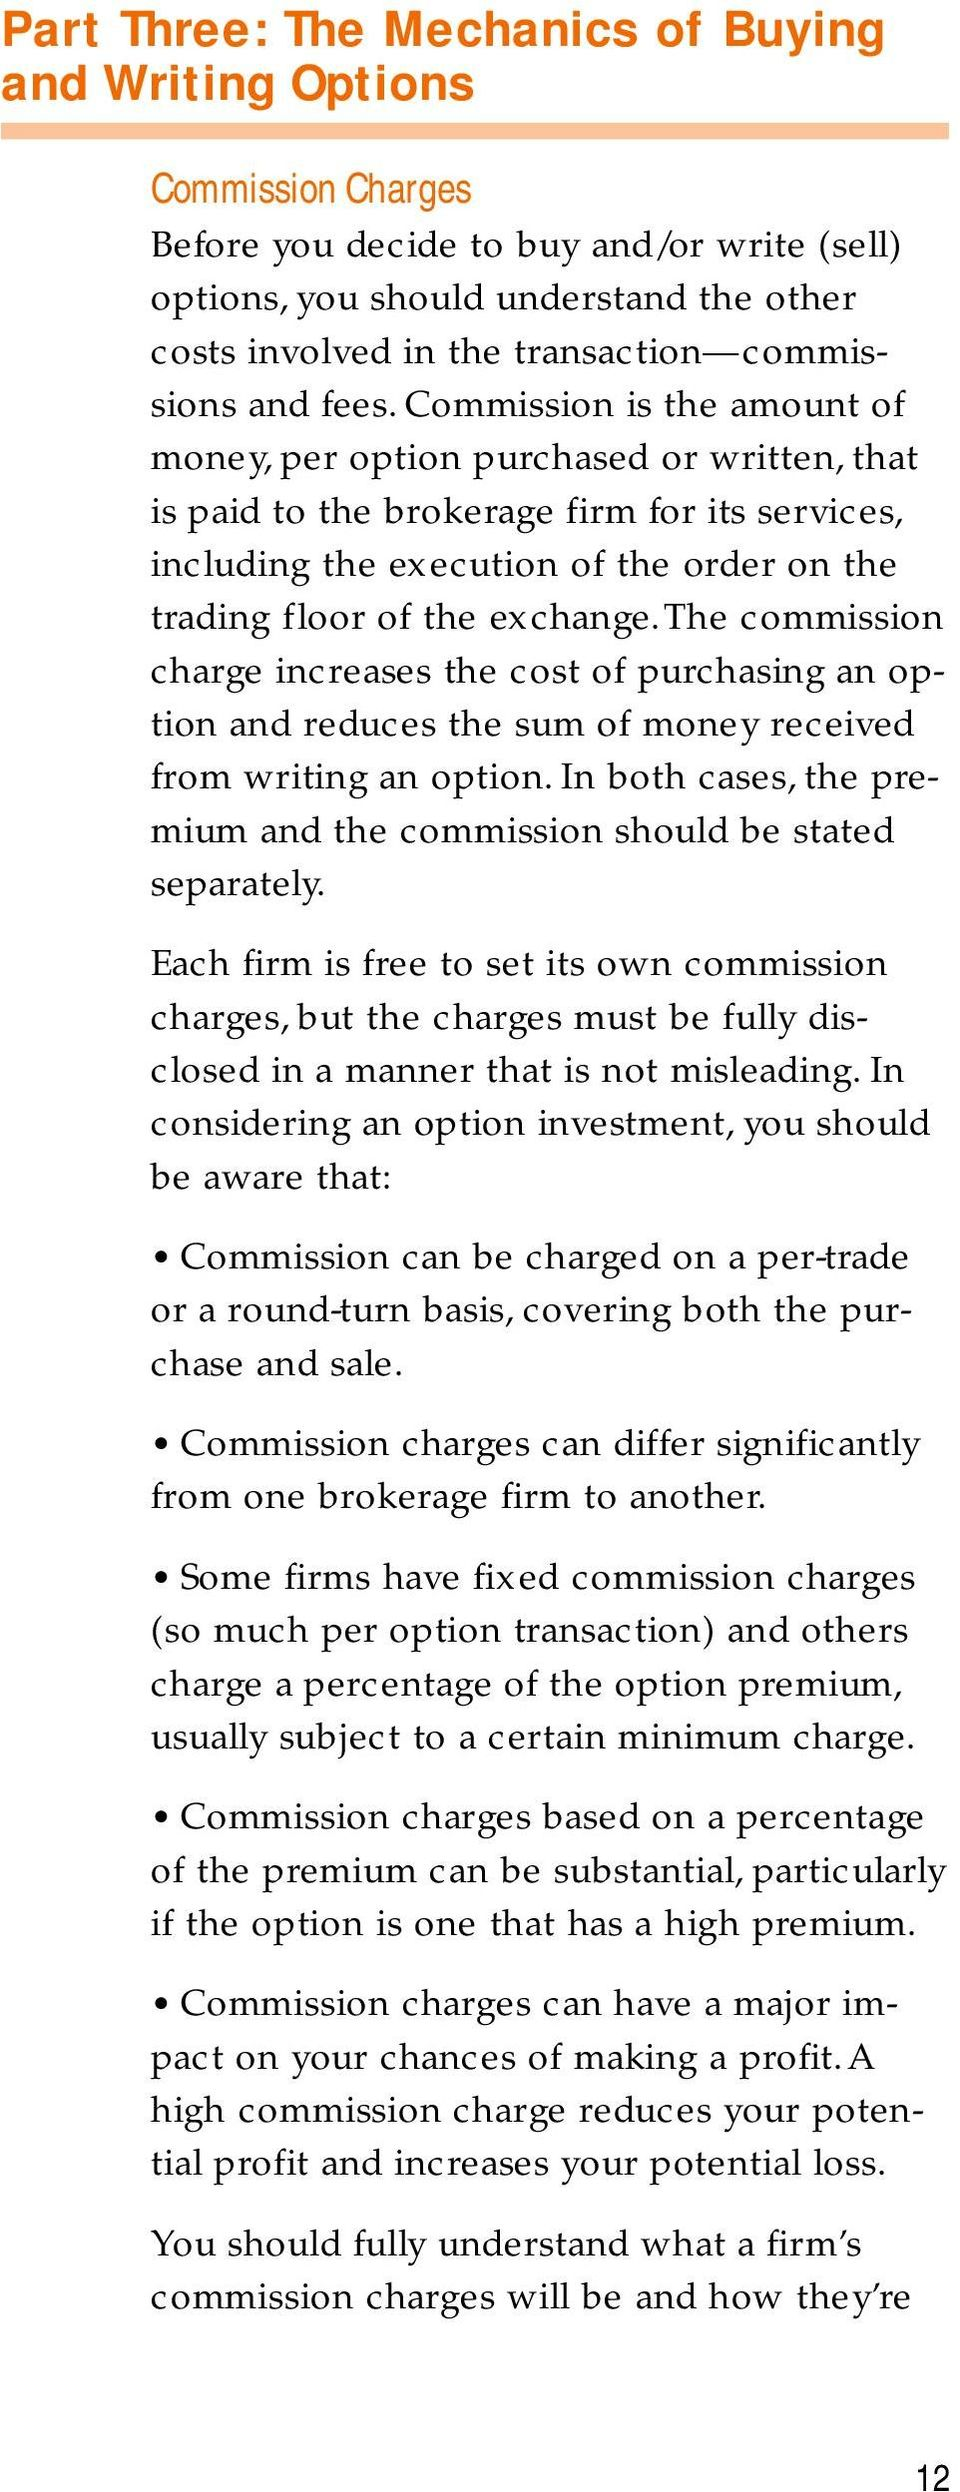 Commission is the amount of money, per option purchased or written, that is paid to the brokerage firm for its services, including the execution of the order on the trading floor of the exchange.